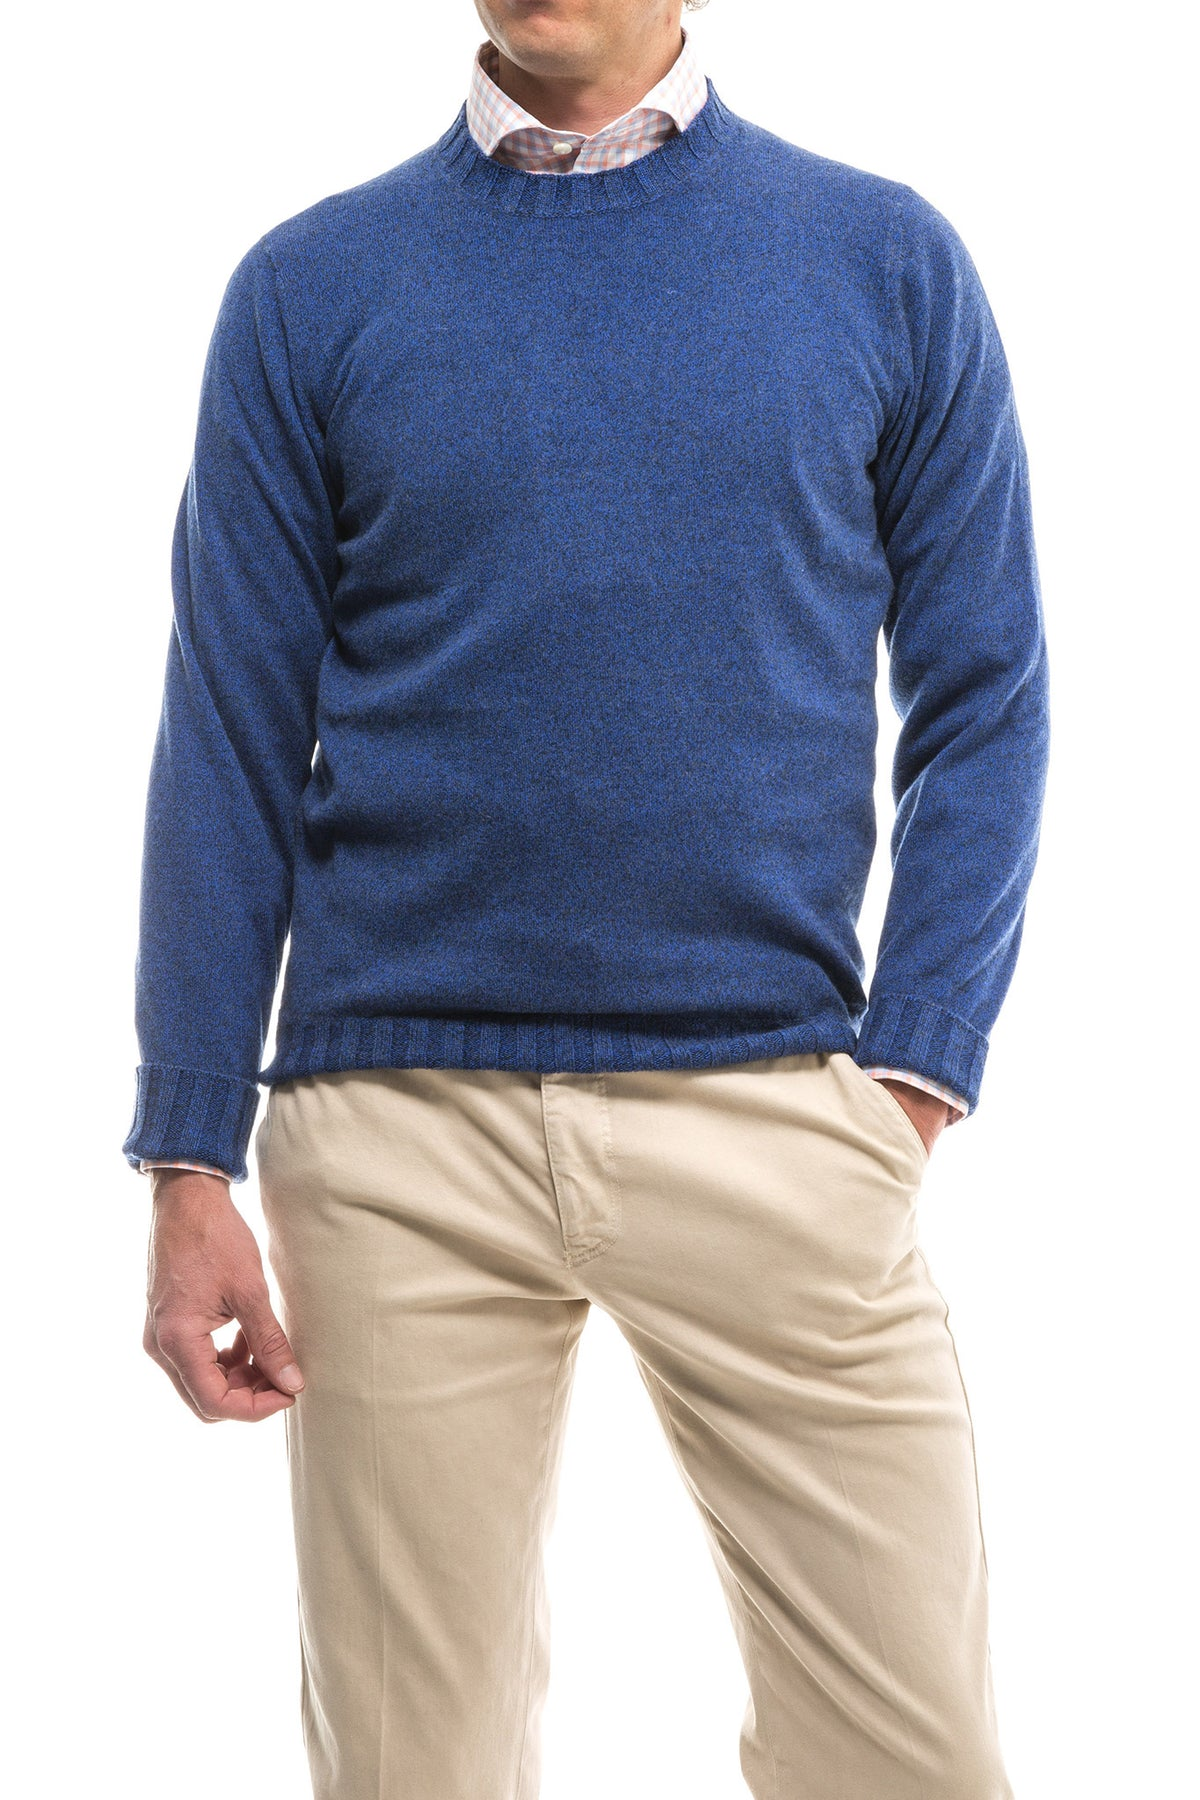 Denima Round Neck Sweater In Electrtic Denim (3580066693213)